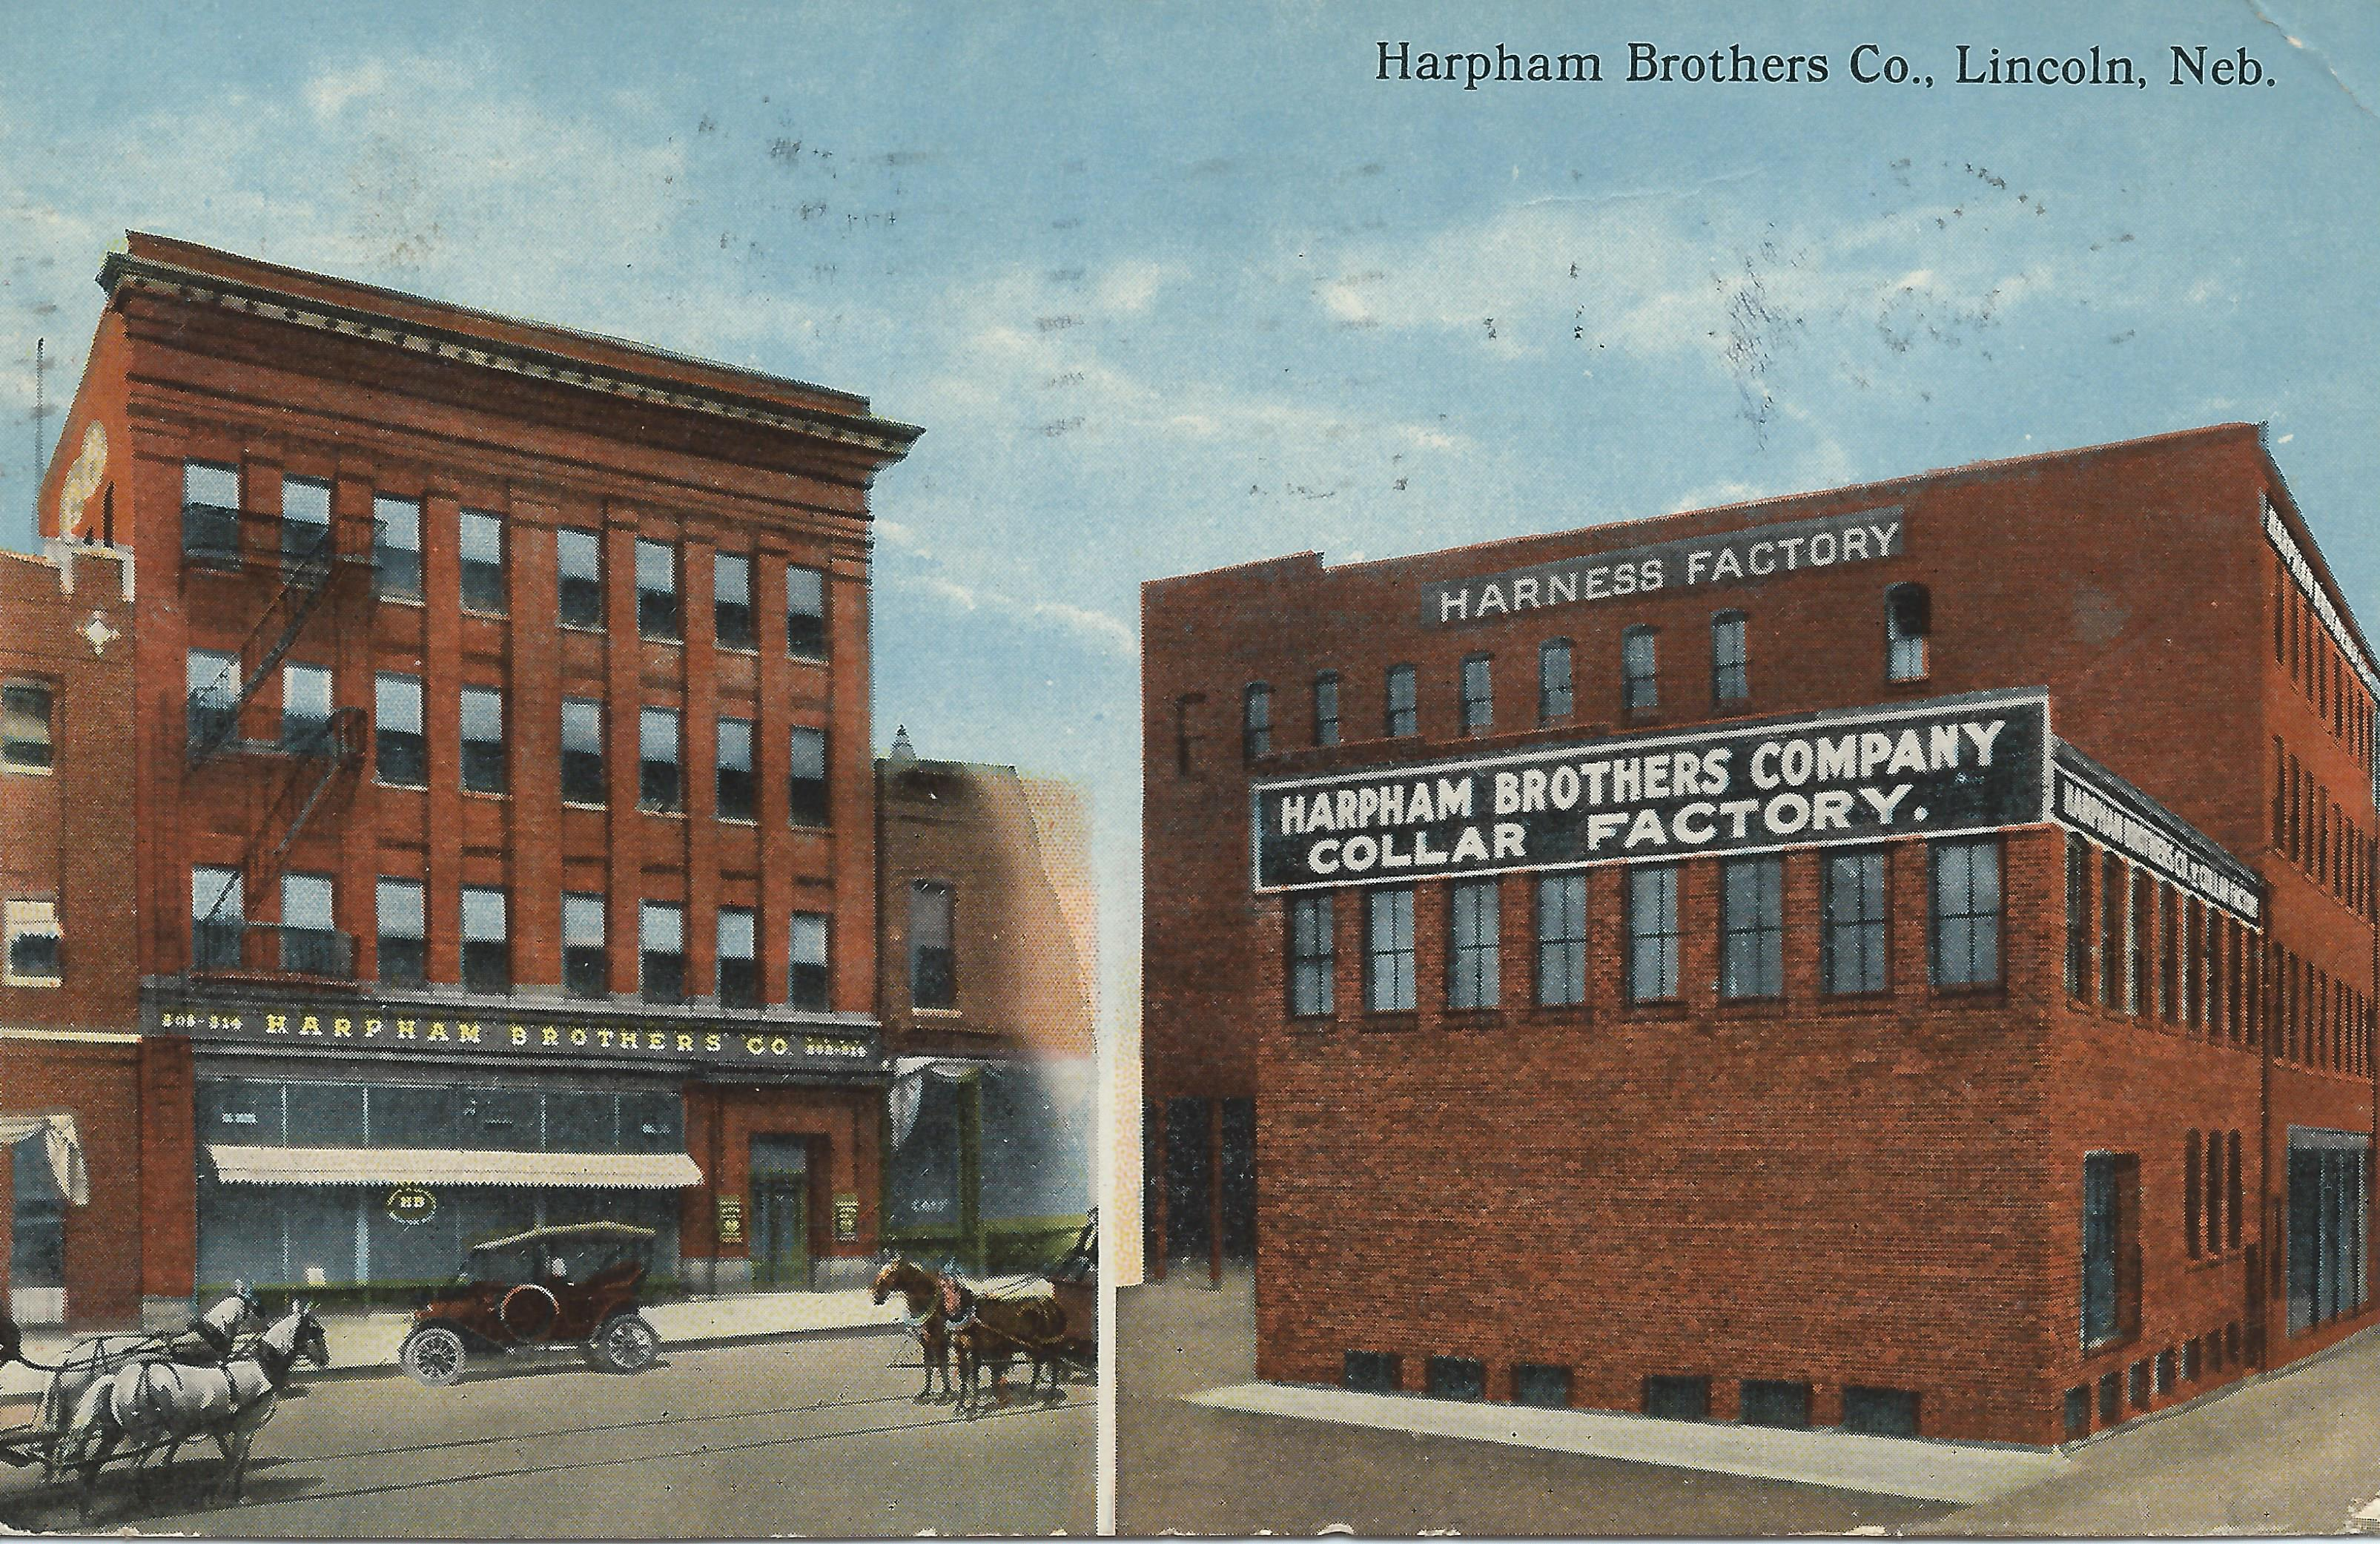 28. Harpham Brothers Buildings